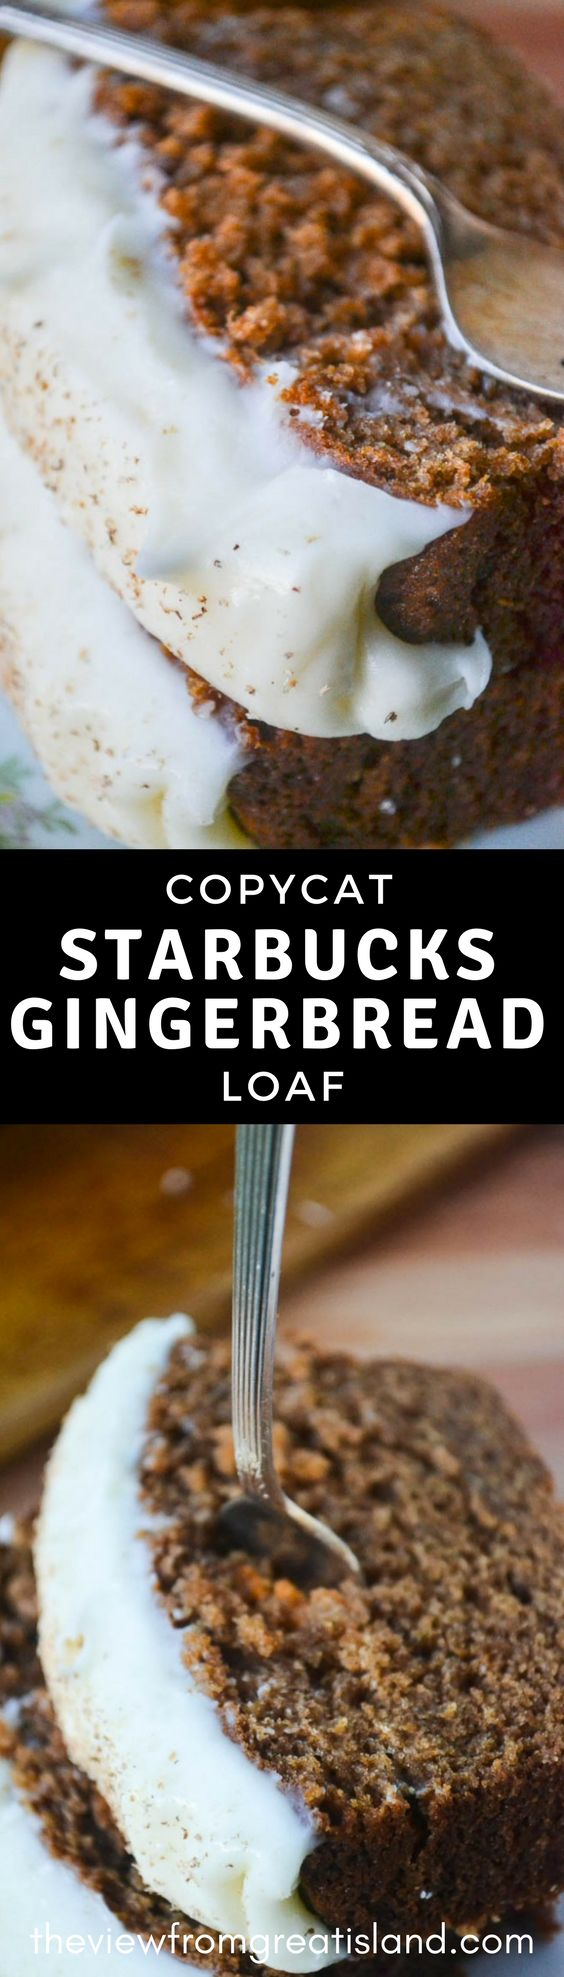 Copycat Starbucks Gingerbread ~ skip the trip to the pricey coffee shop and make your own moist and perfectly spiced frosted gingerbread. #copycatrecipe #starbuckscopycat #holidaydessert #cake #quickbread #spicecake #breakfast #ginger #holidaybreakfast #foodgift